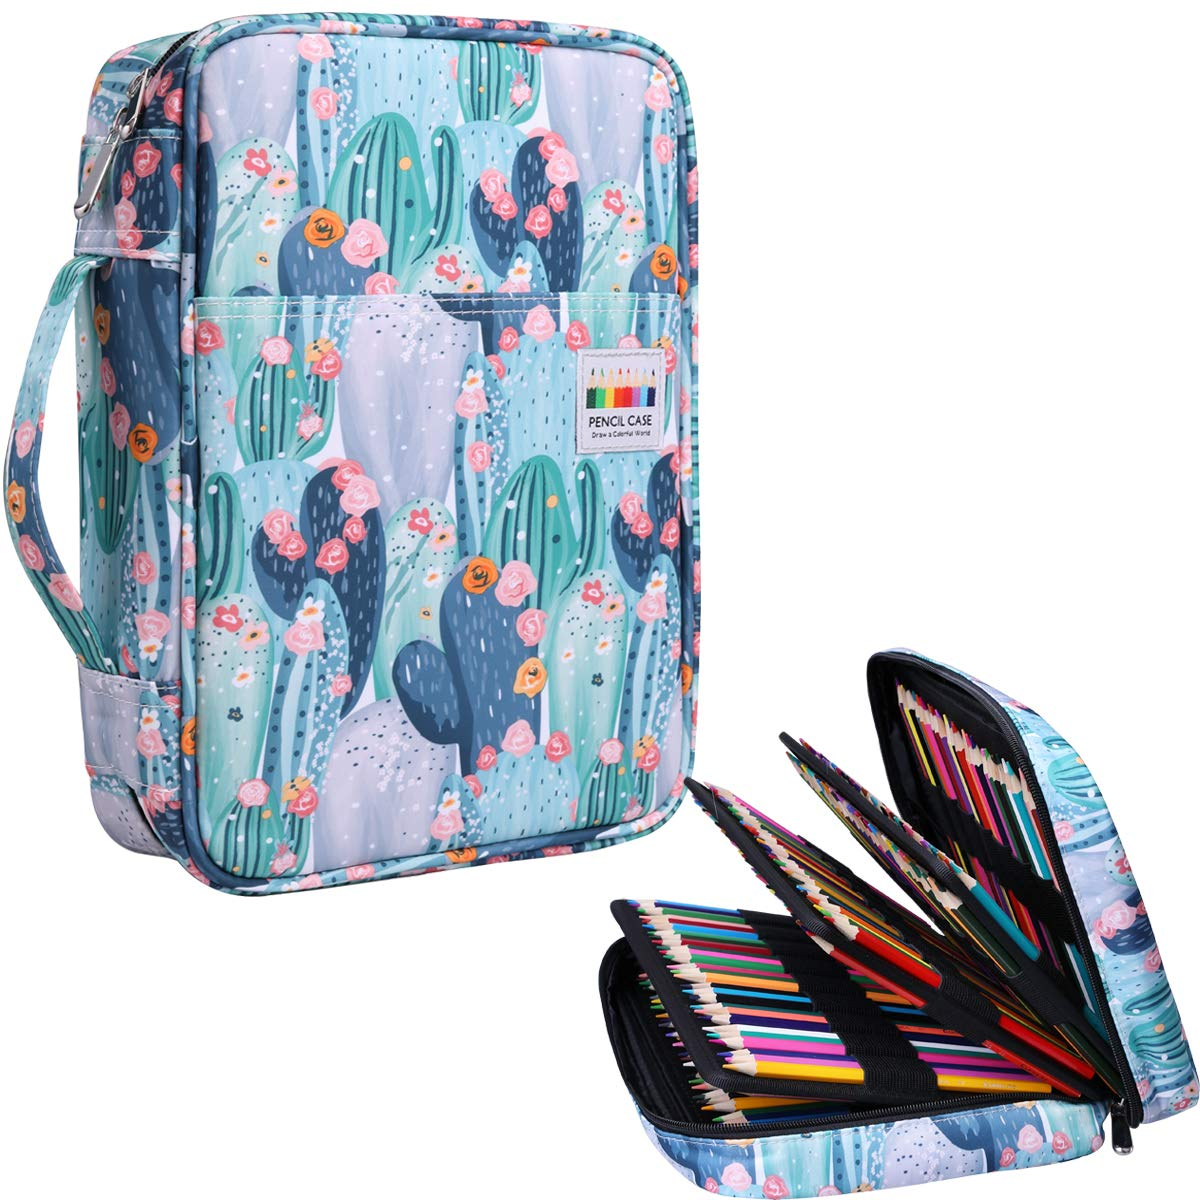 220 Colored Pencil Case Multi Pencil Holder Large Capacity Pen Organizer Bag for Watercolor Pencils, Markers,Gel Pens, Highlighters, Brushes, Great Gift for Students Painter Writers (Cactus)